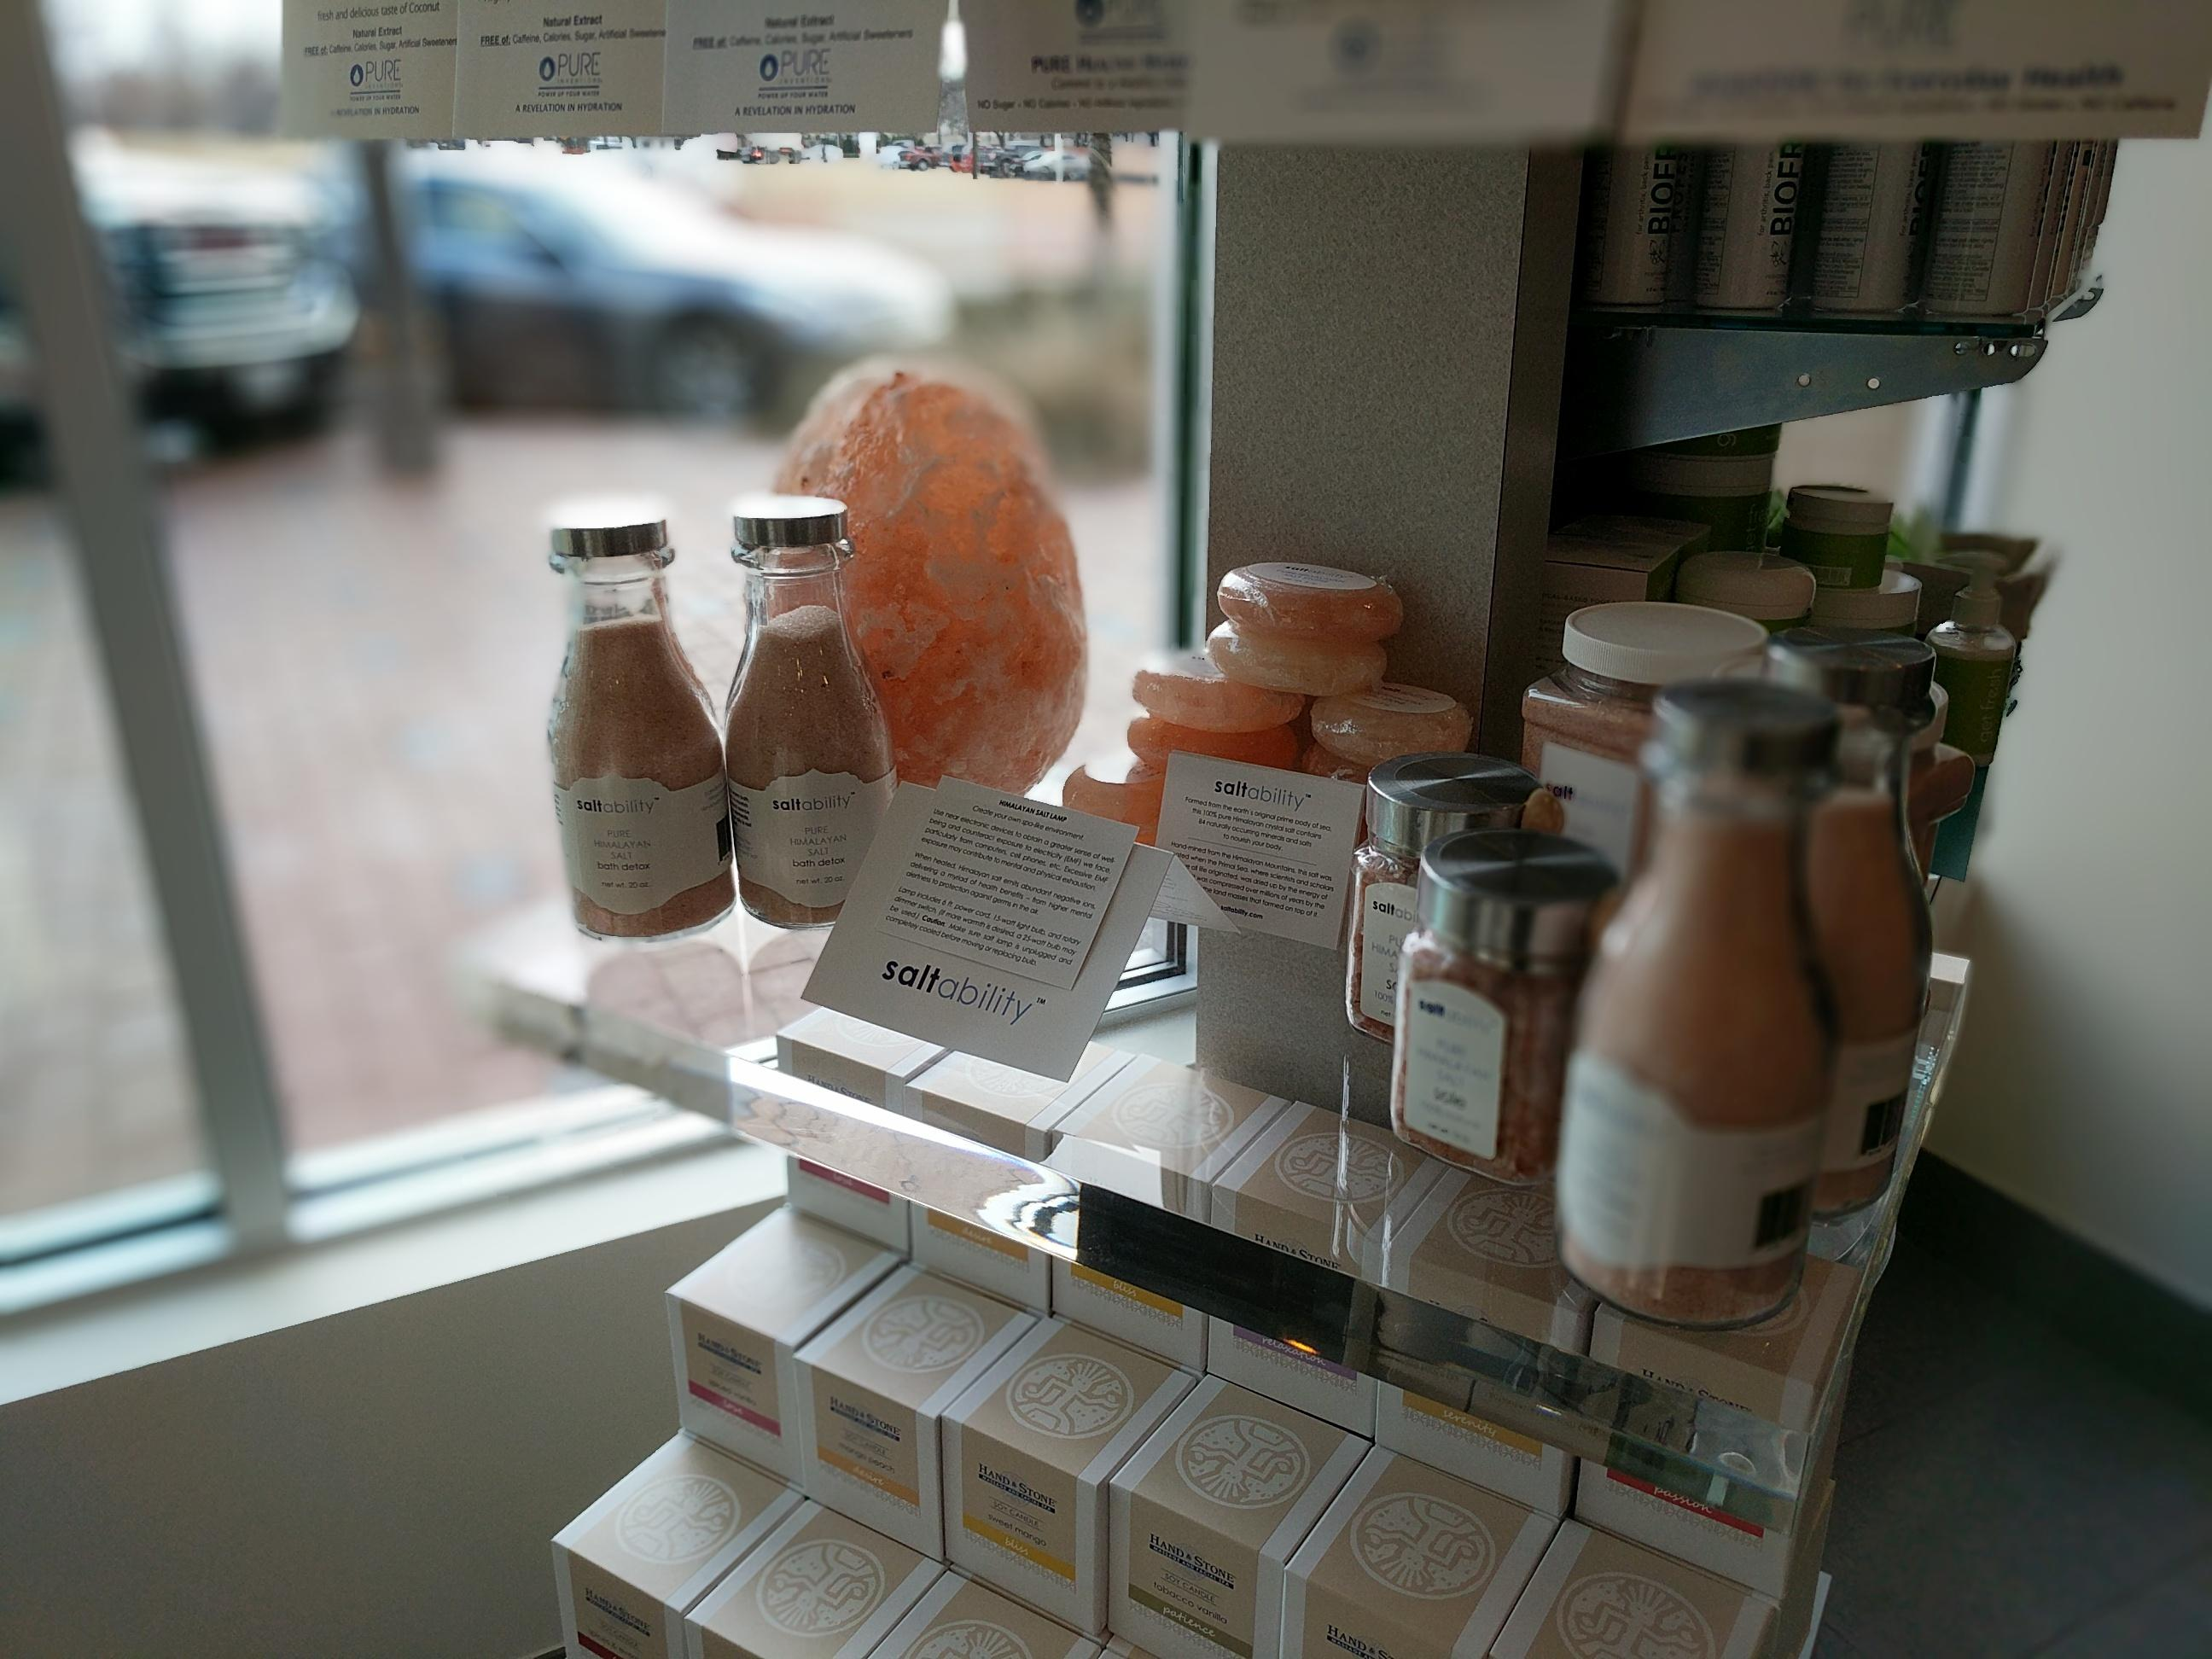 We offer Himalayan Salt Products To Take Home And Enjoy